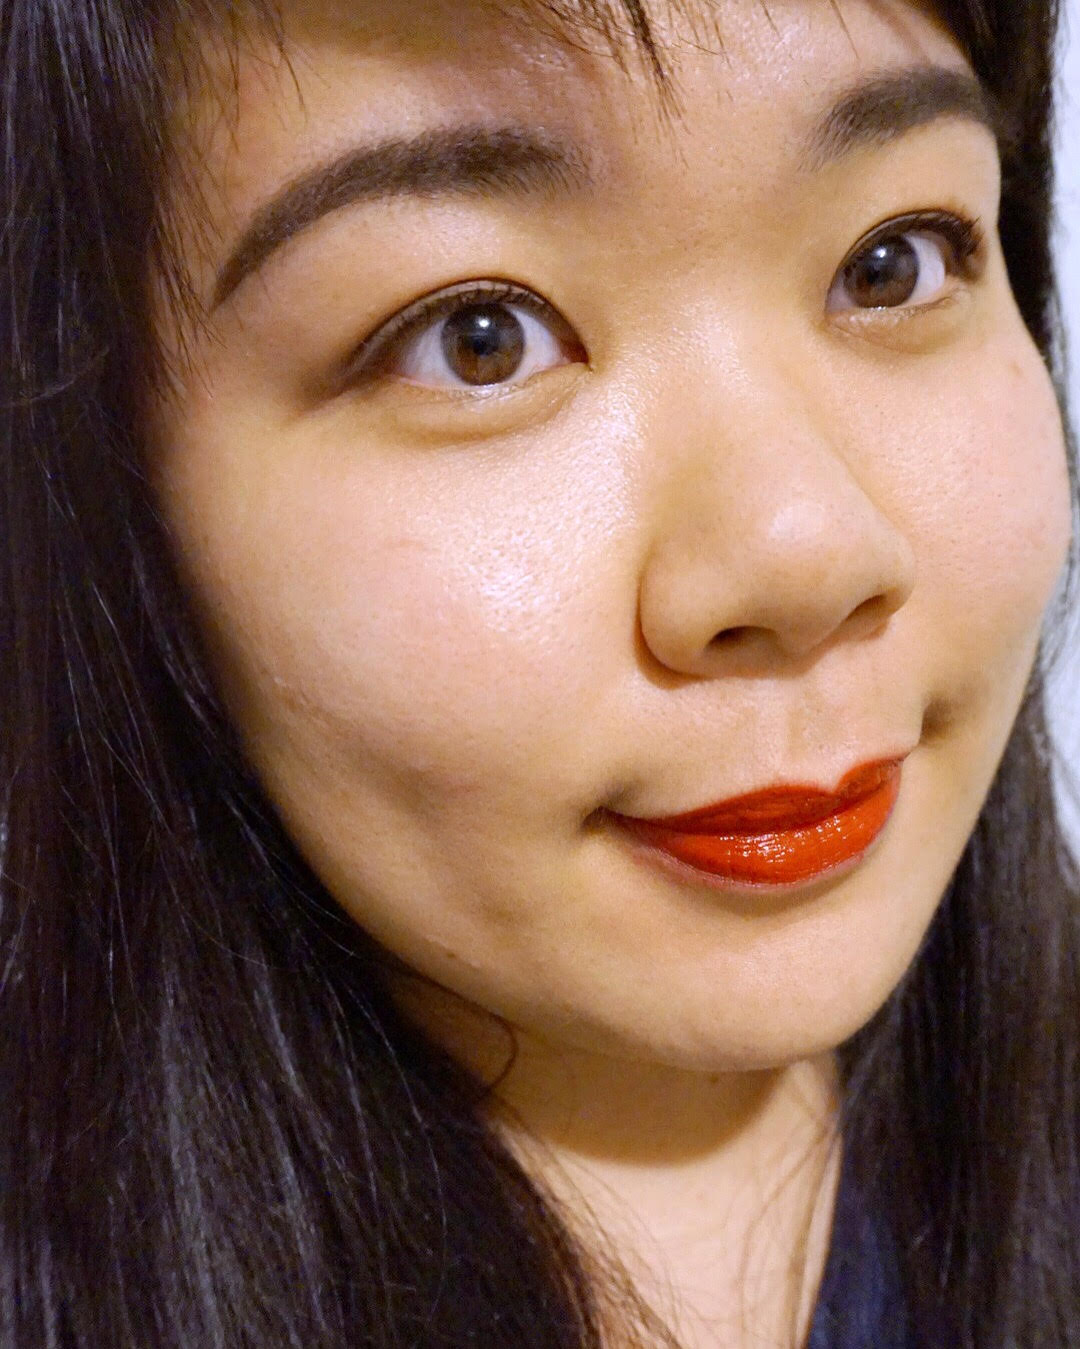 make-up-for-ever-rouge-artist-intense-lipstick-in-shade-43-asian-skin